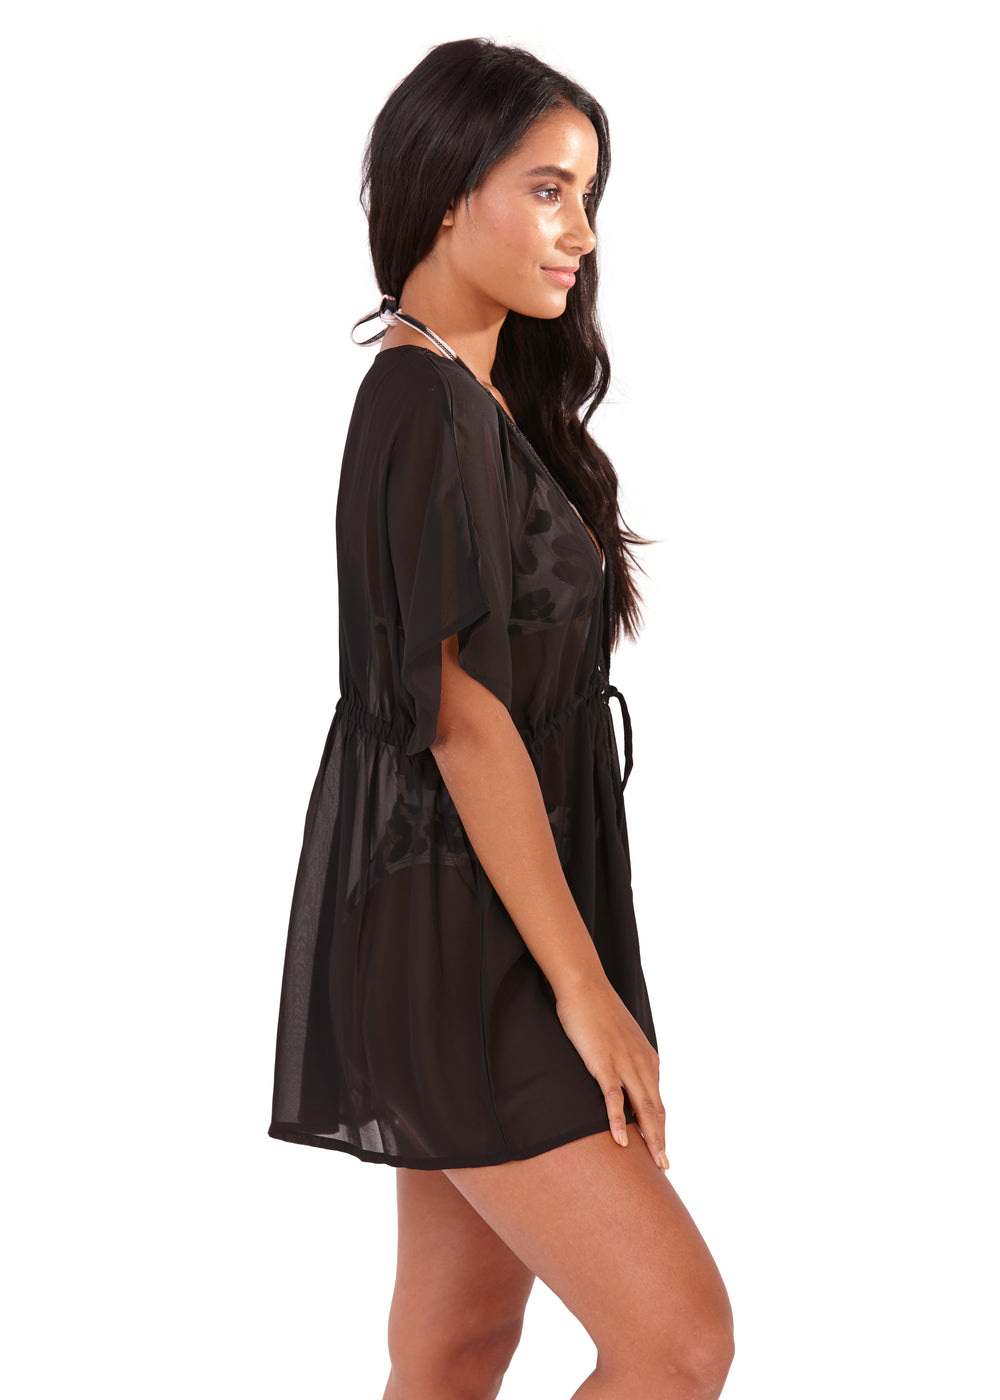 South Beach - Black Chiffon Tie Front Kaftan with mirror detail side